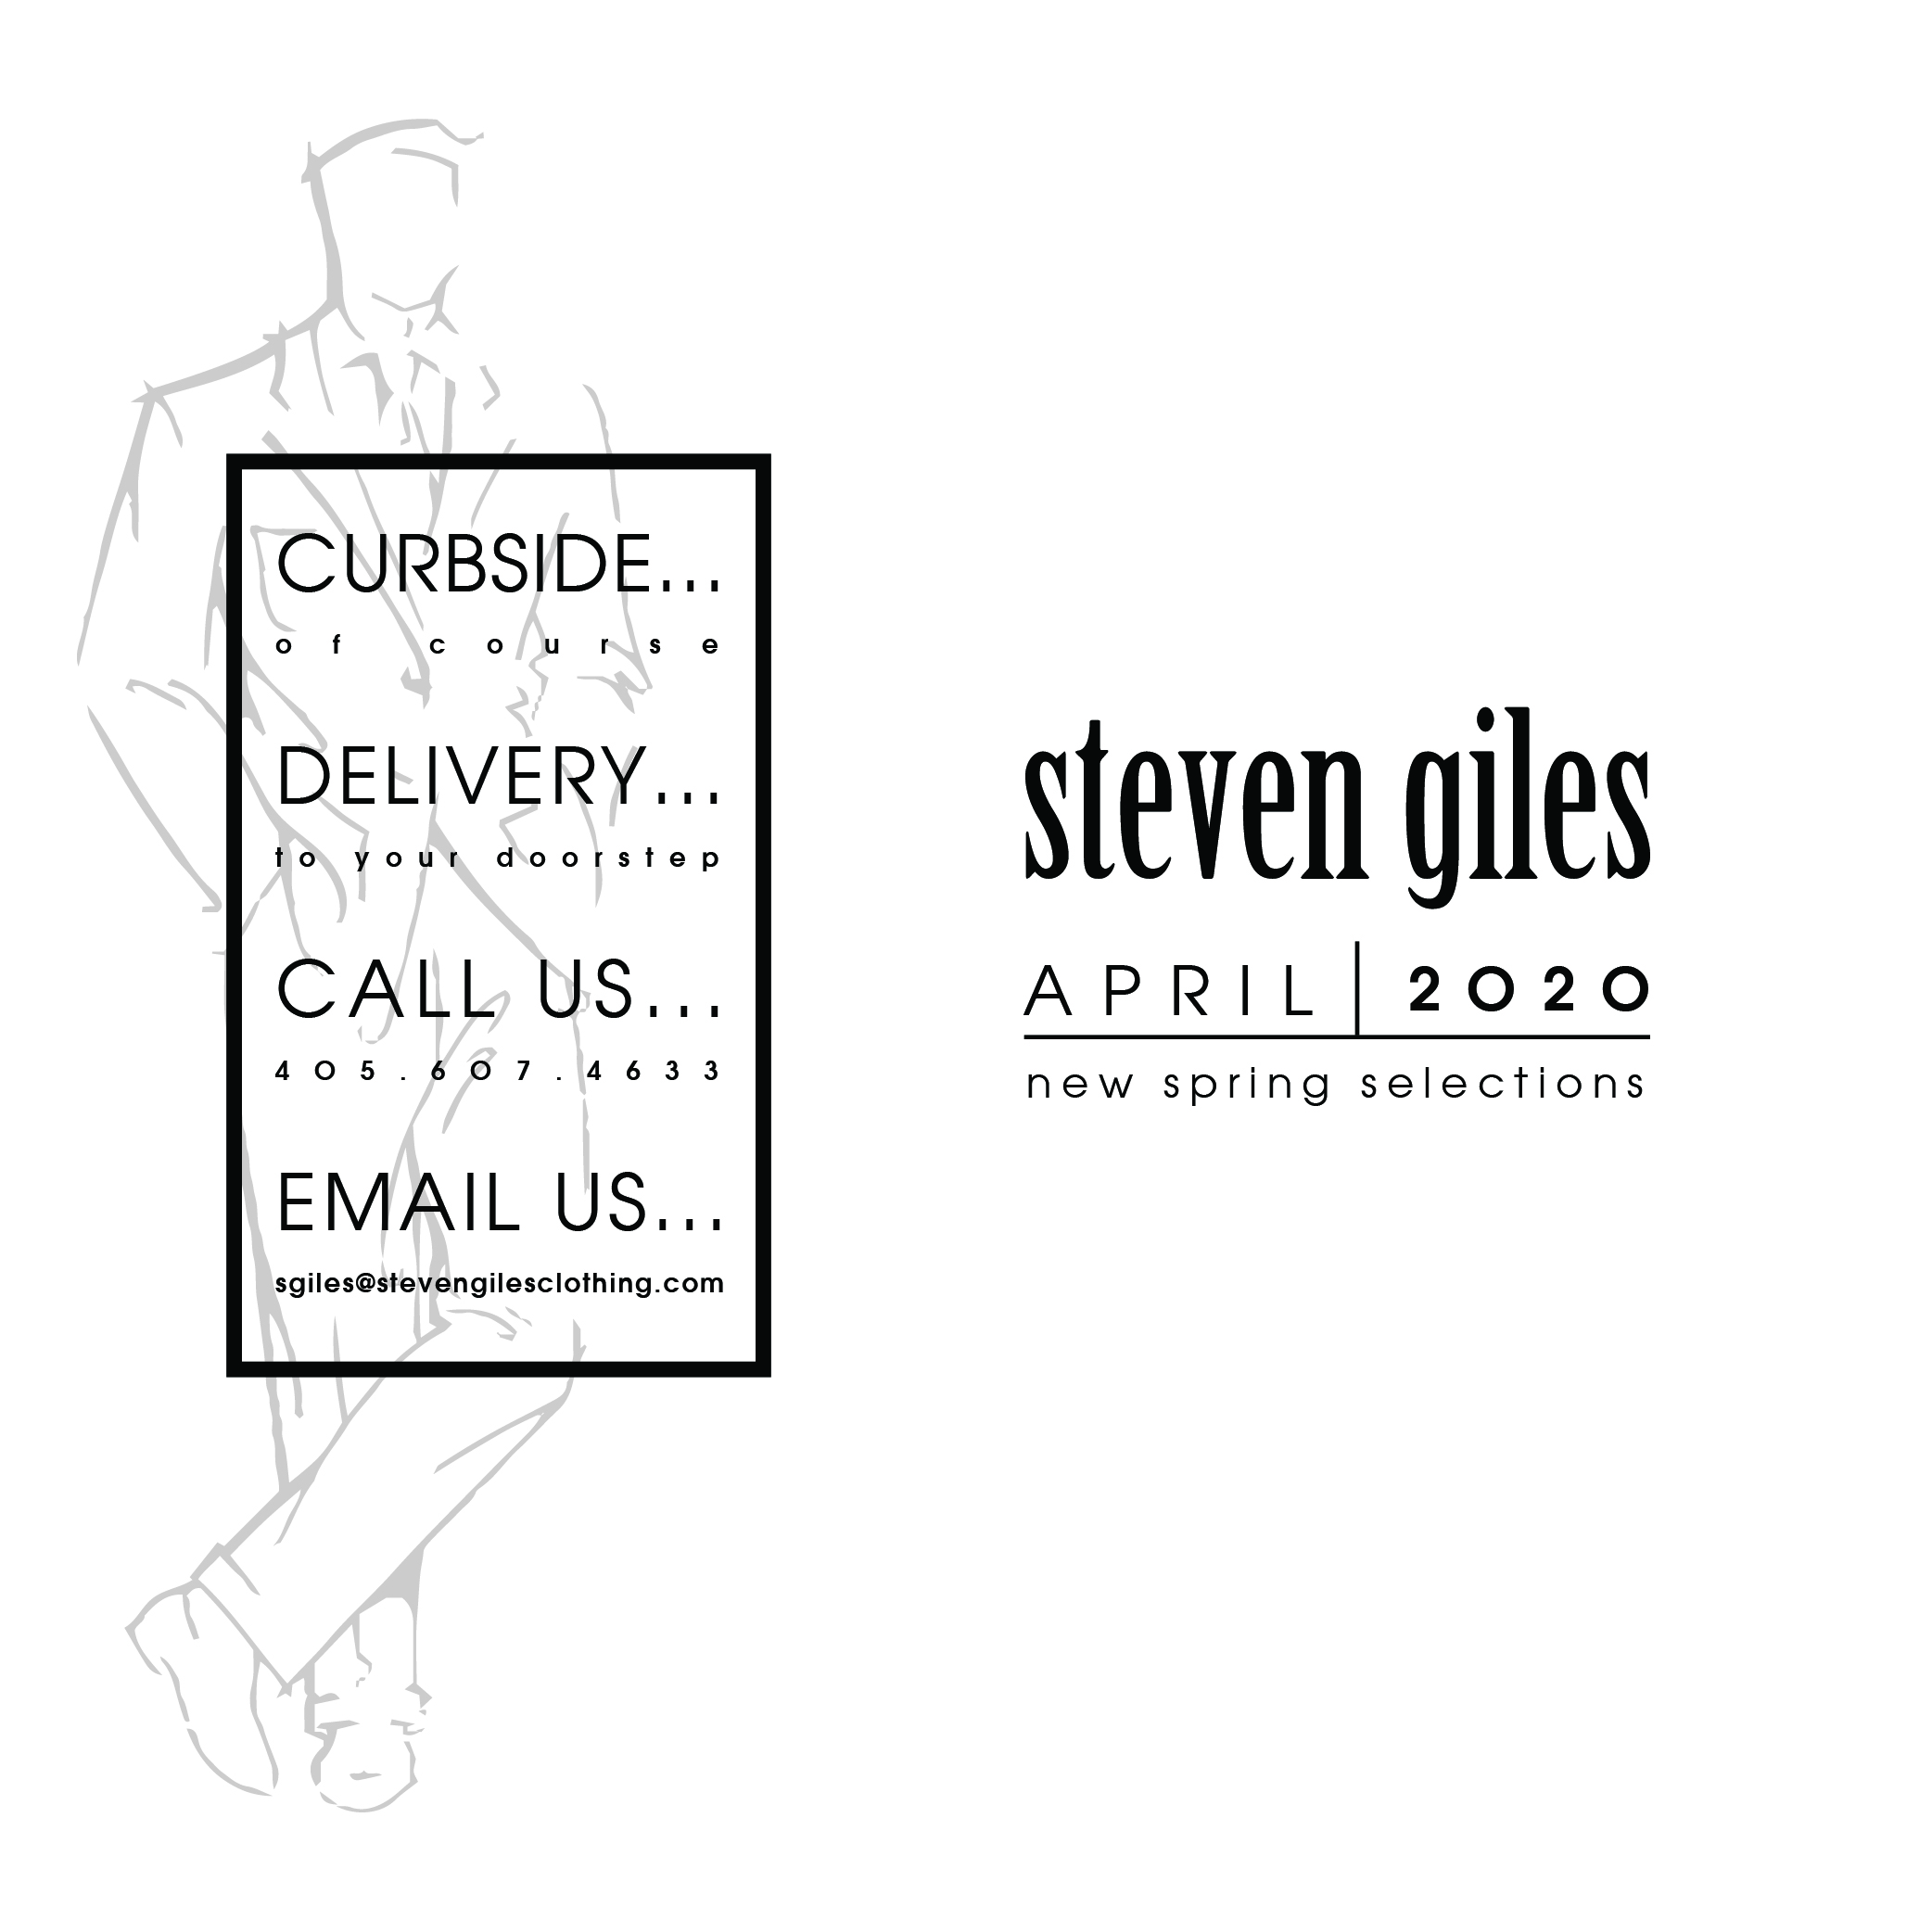 Curbside, Delivery, Call Us, or Email US